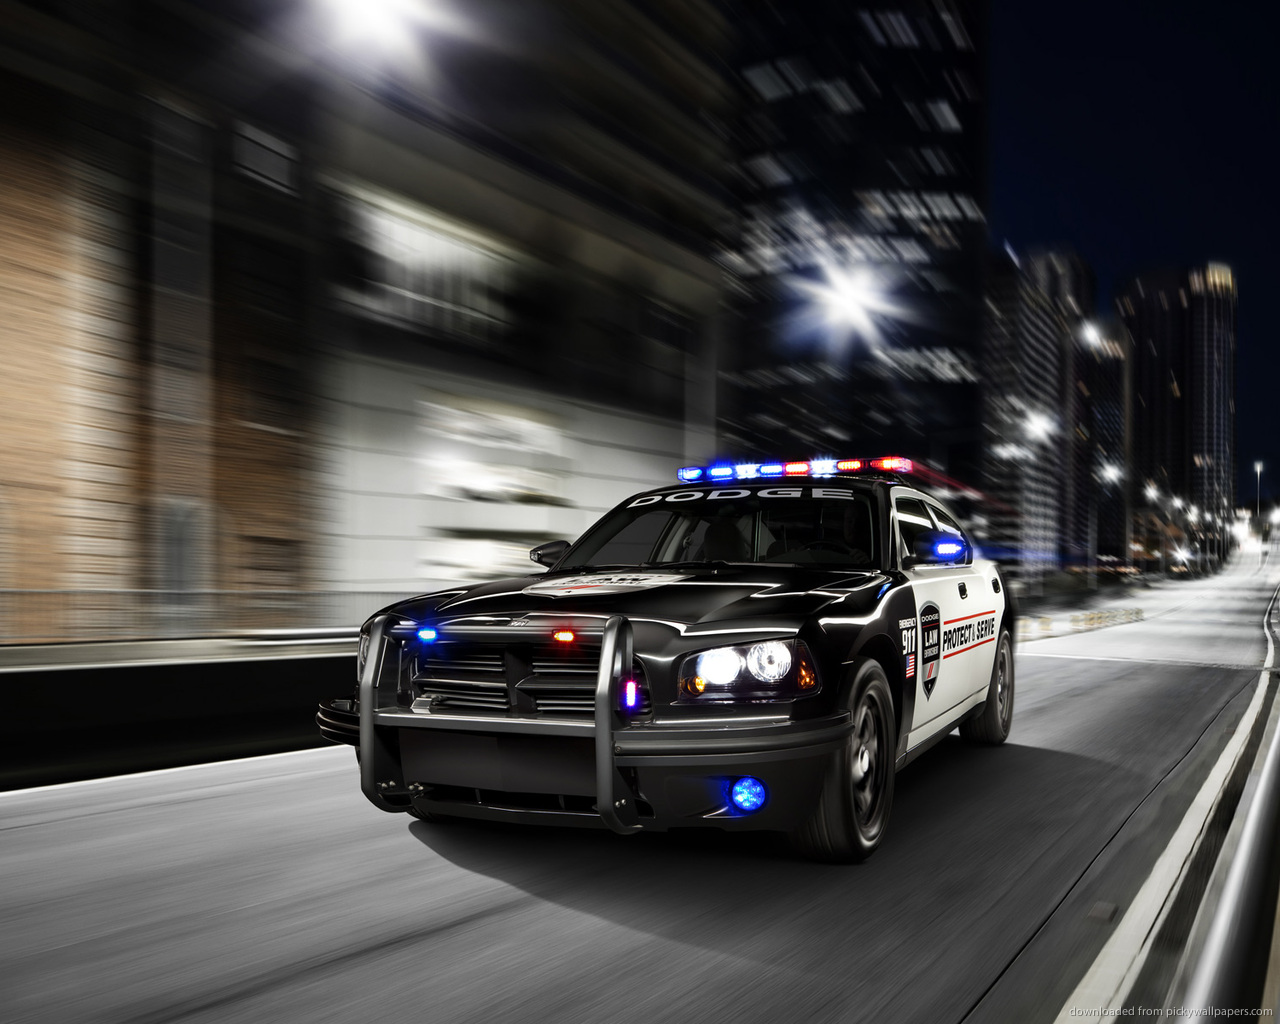 Charger Police Cars Hd Wallpaper Desktop High Definitions Wallpapers 1280x1024